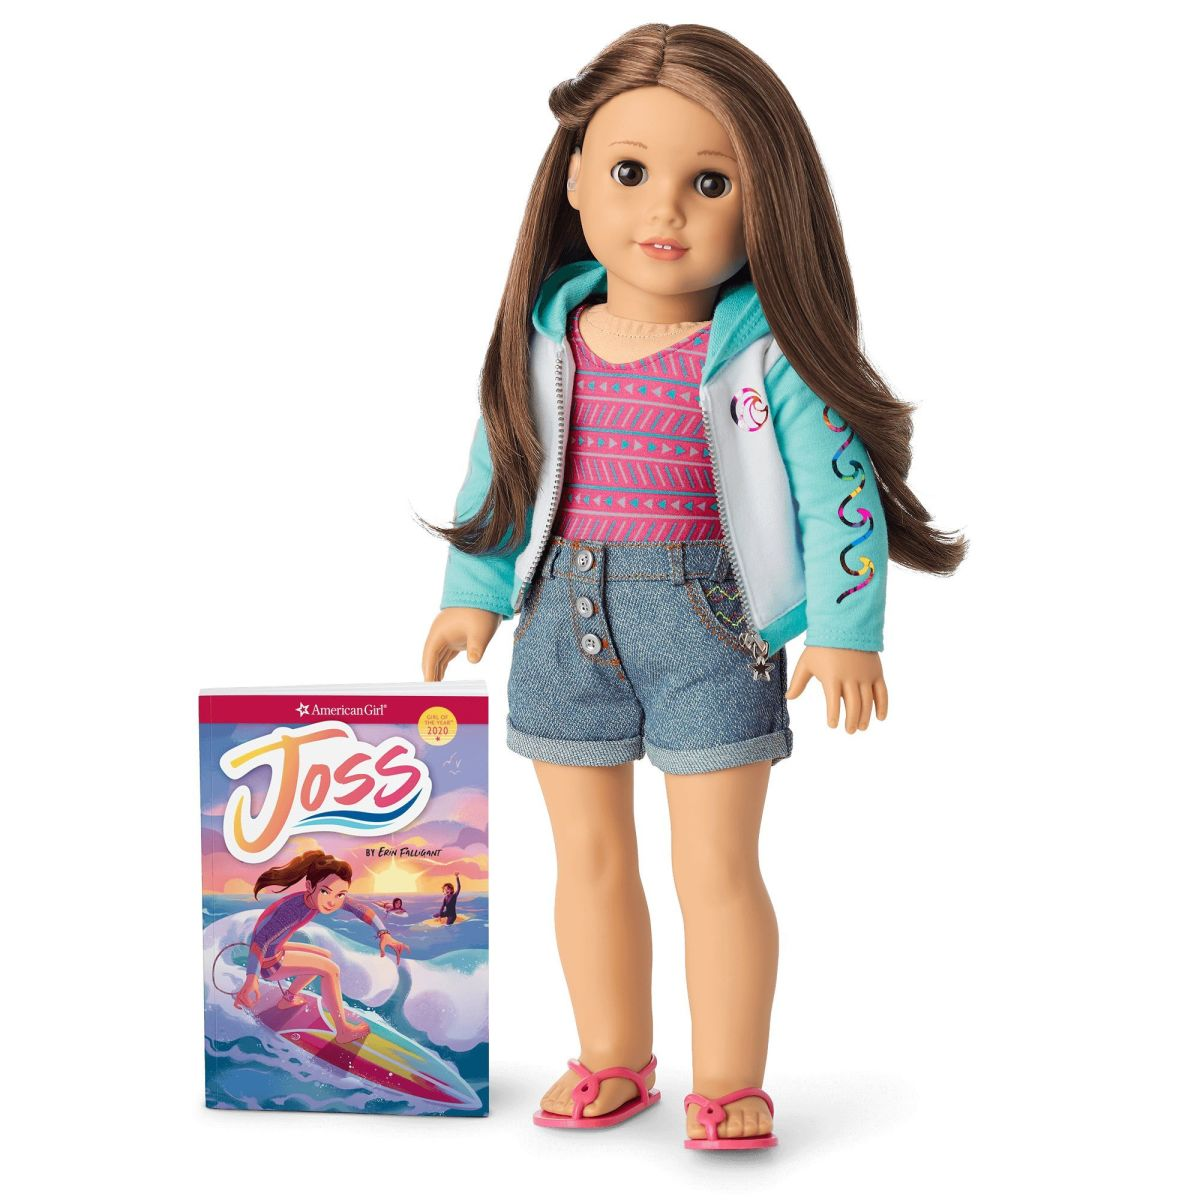 Joss, the 2020 Girl of the Year